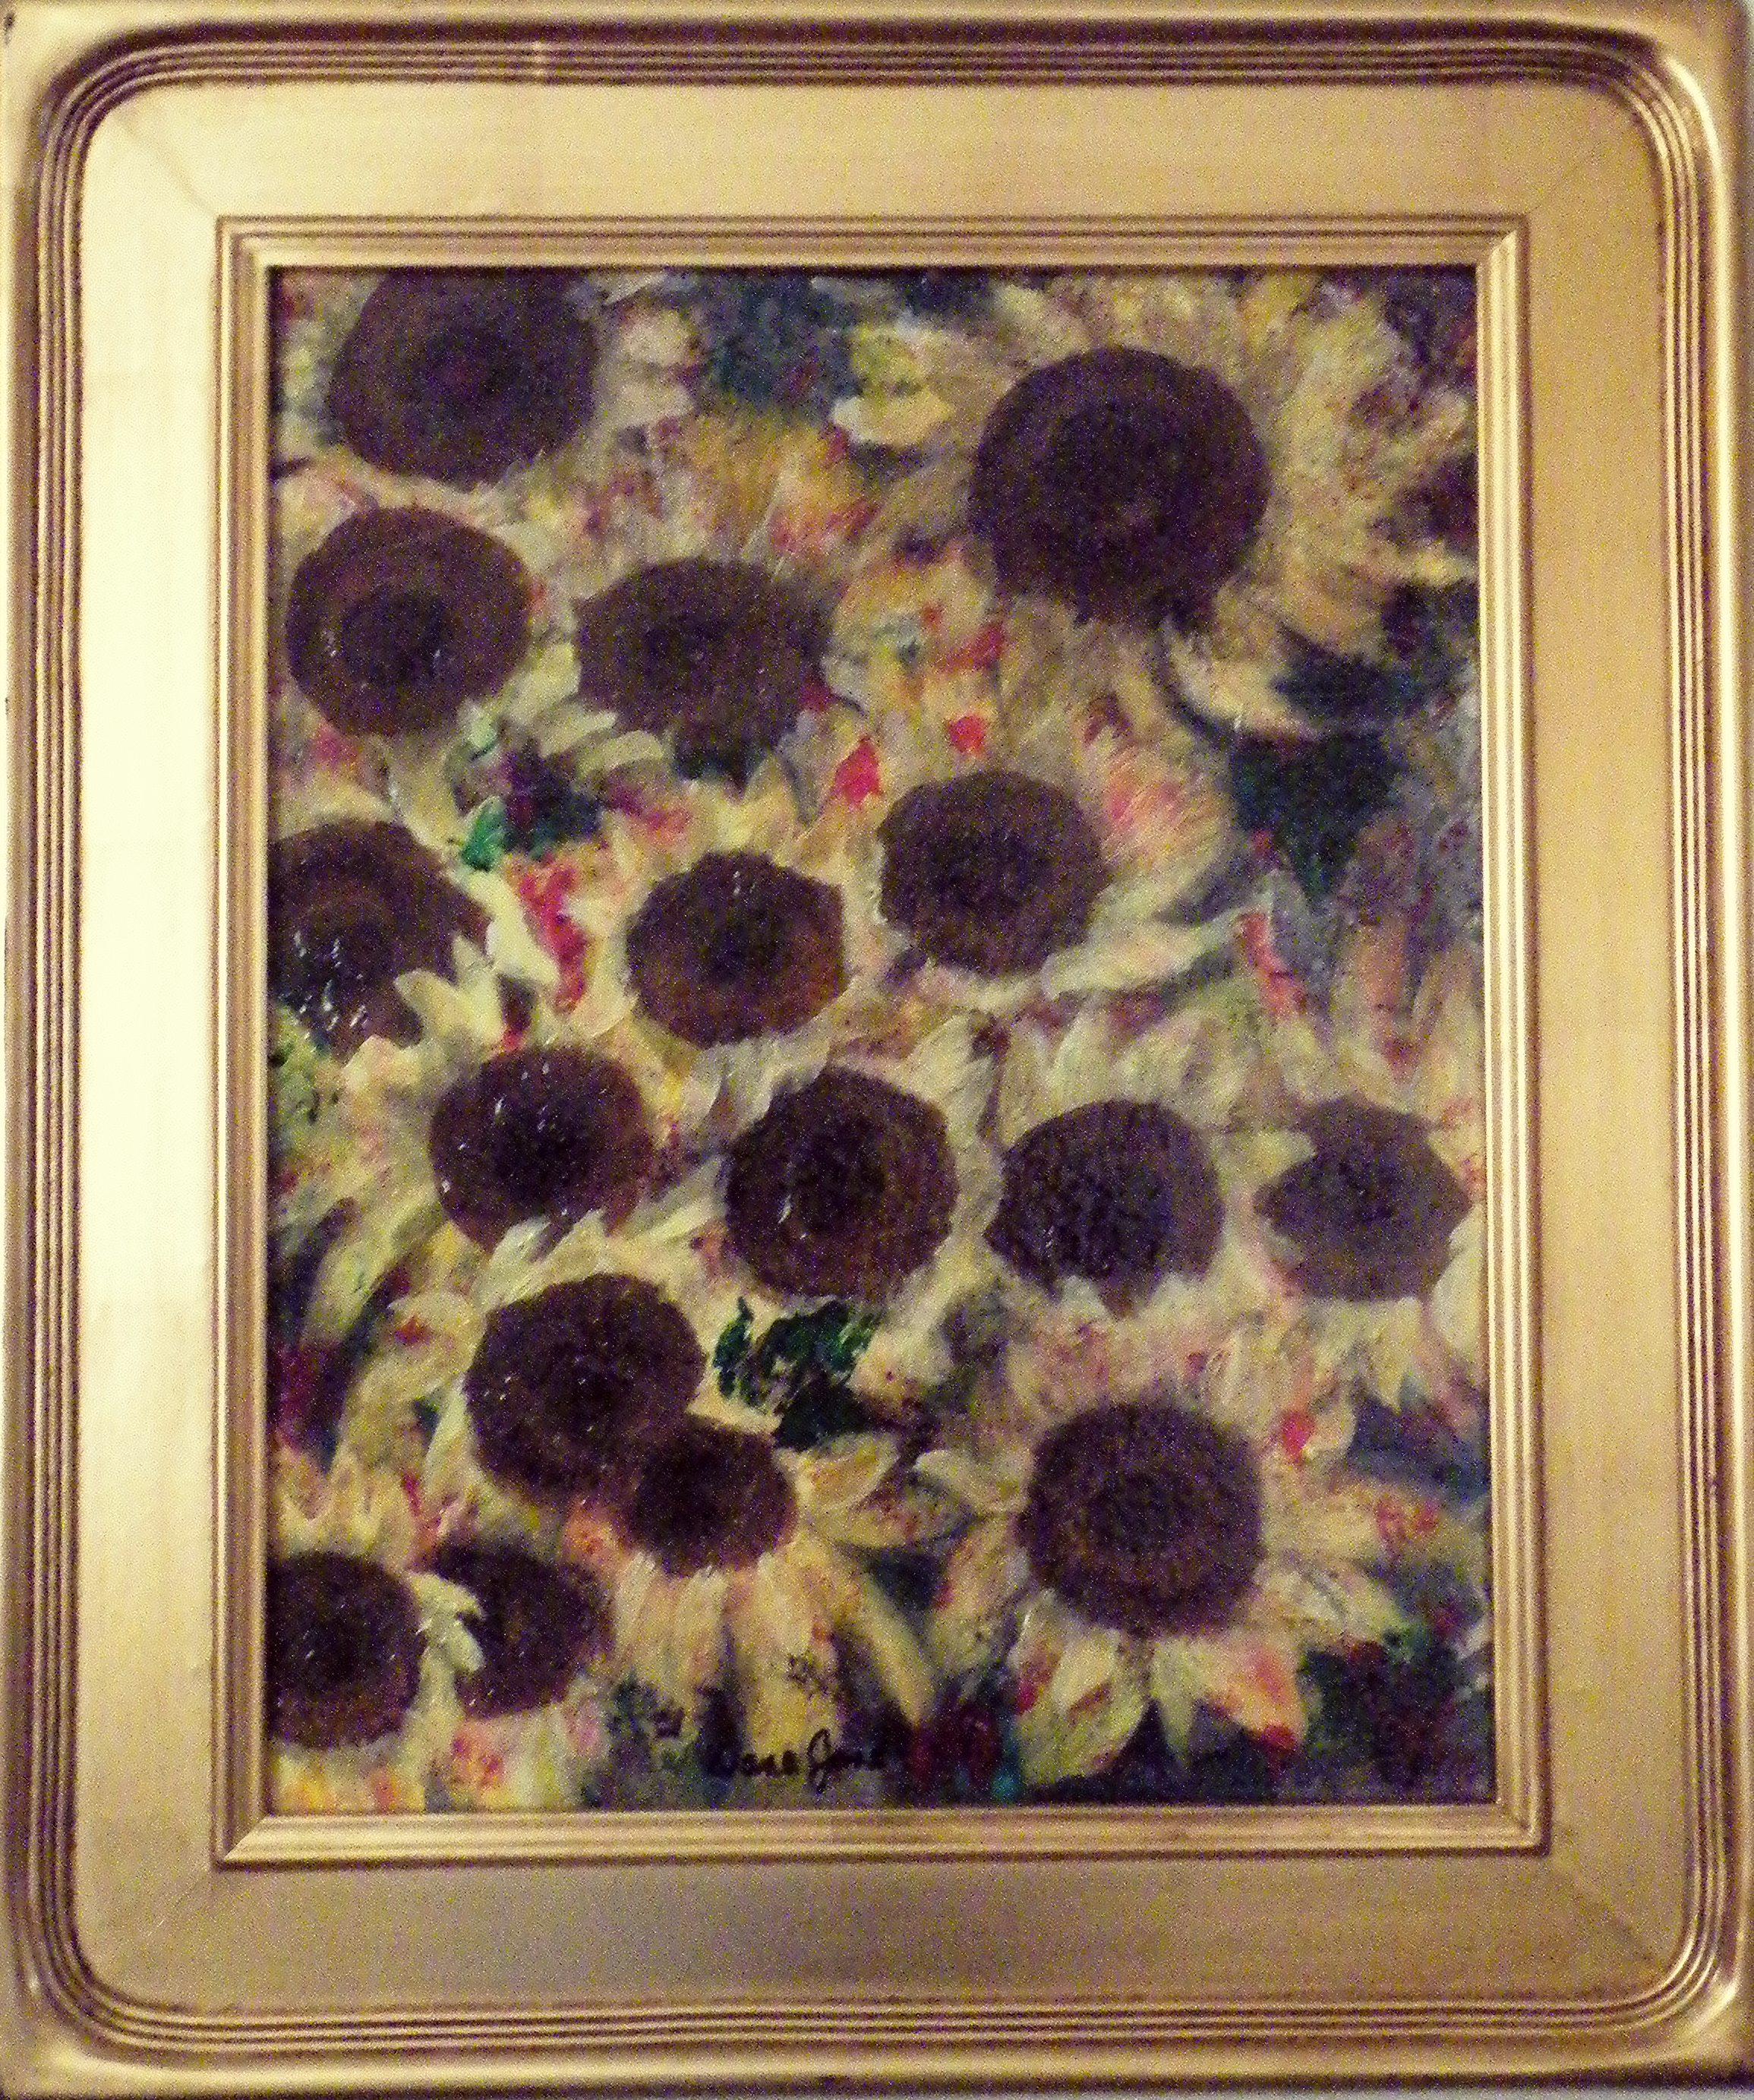 Abstract Sunflowers 16X20 Acrylic on Canvas Wrap with Large Frame ...